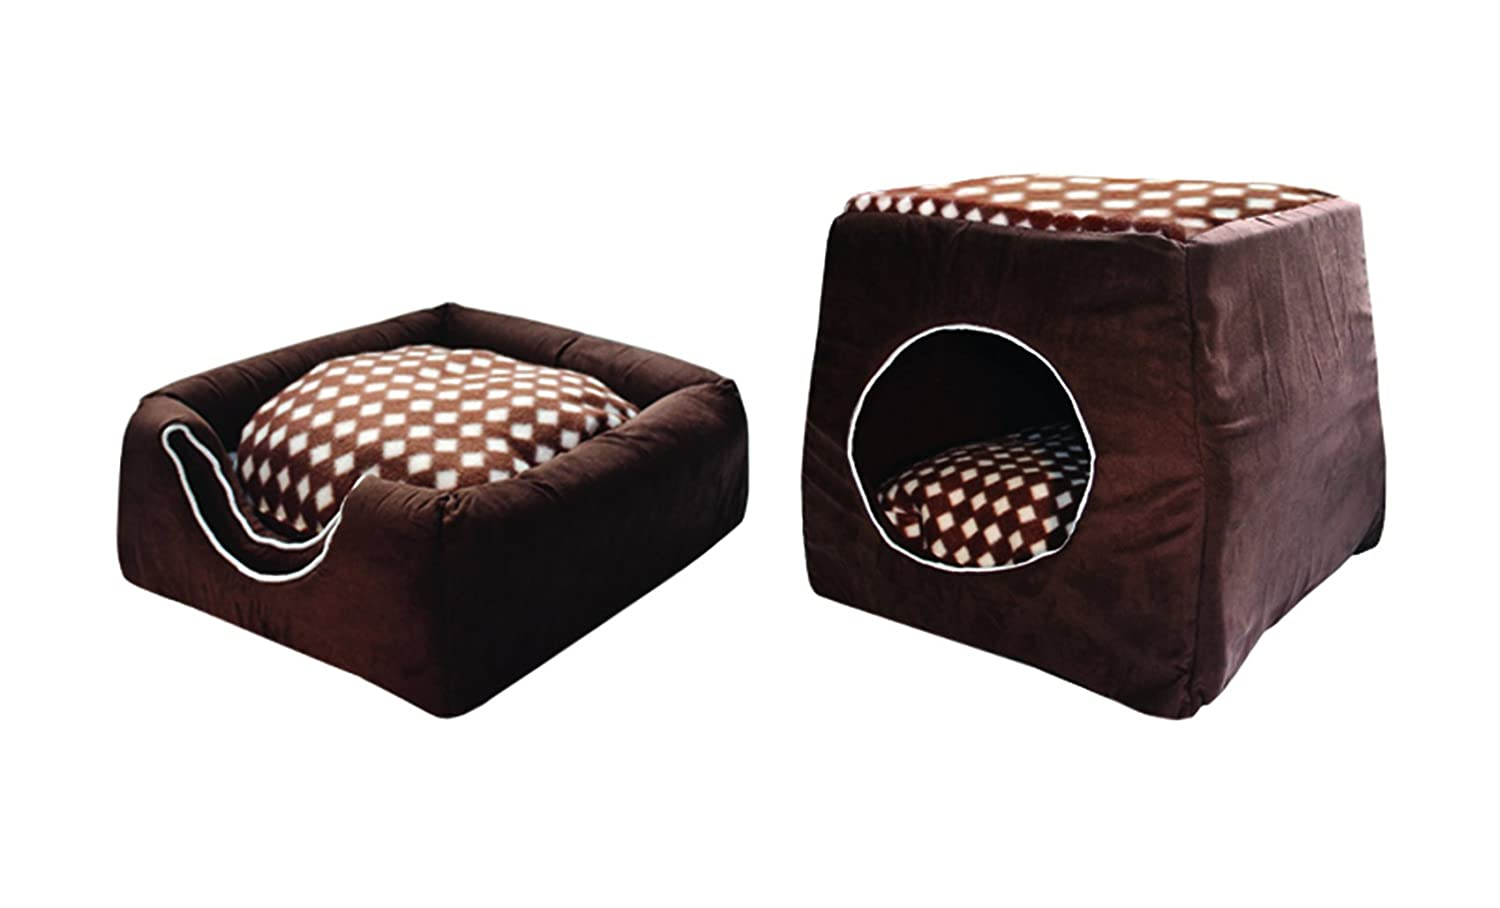 most durable sofa fabric for cats pillow ideas leather convertible 2 in 1 pet bed house dog cat folding portable